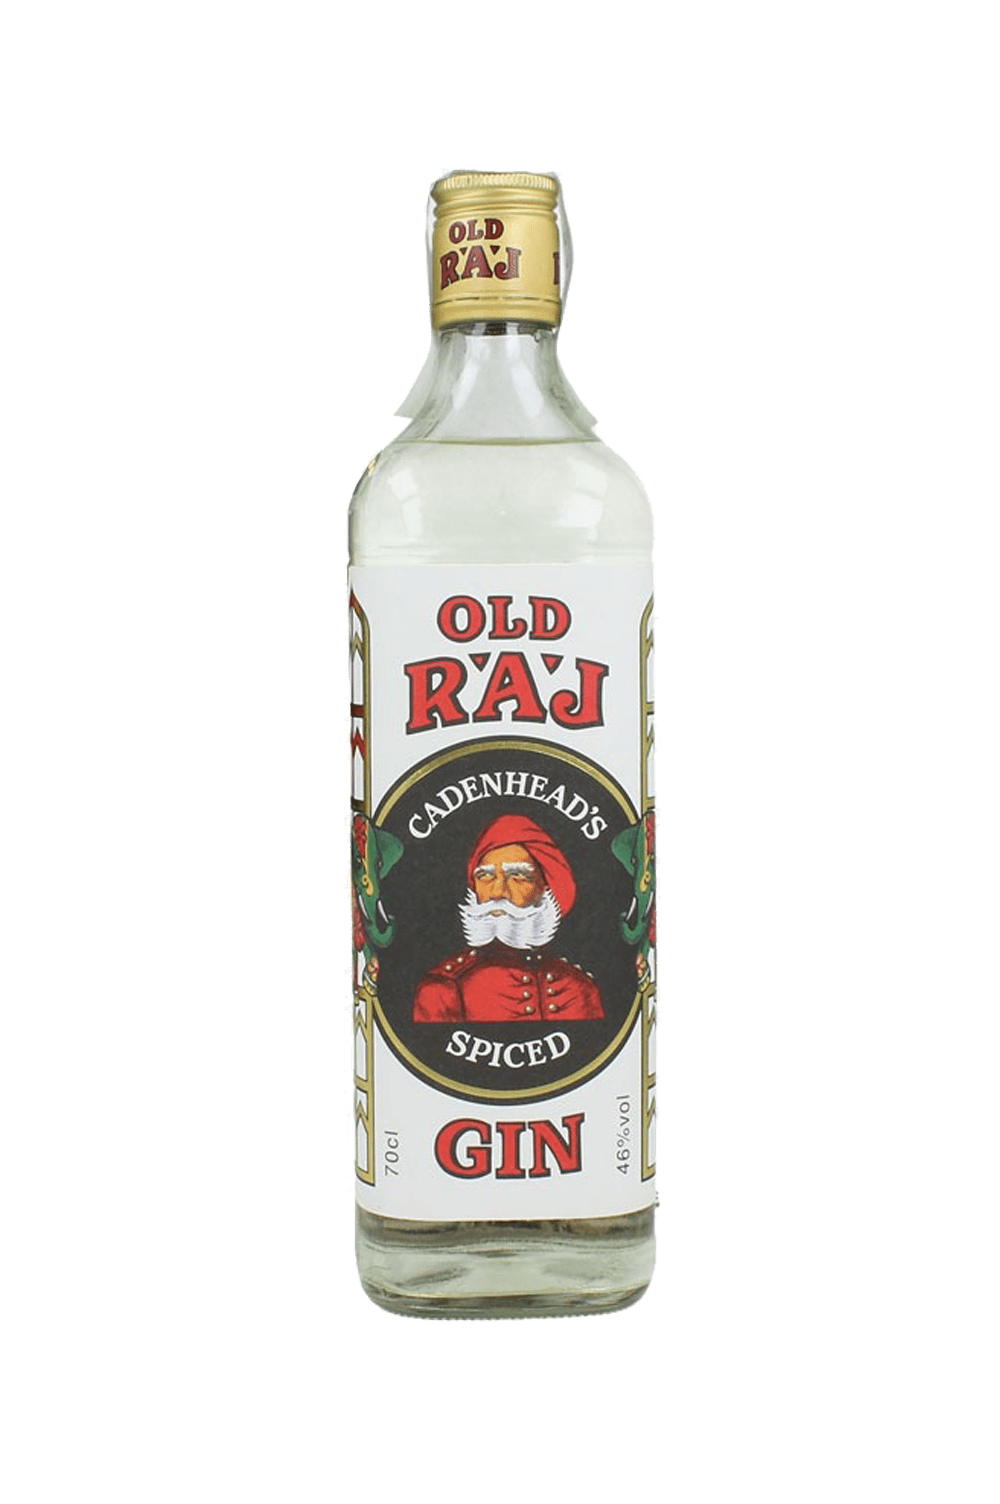 Cadenhead's Old Raj Spiced Gin Red Label 46%